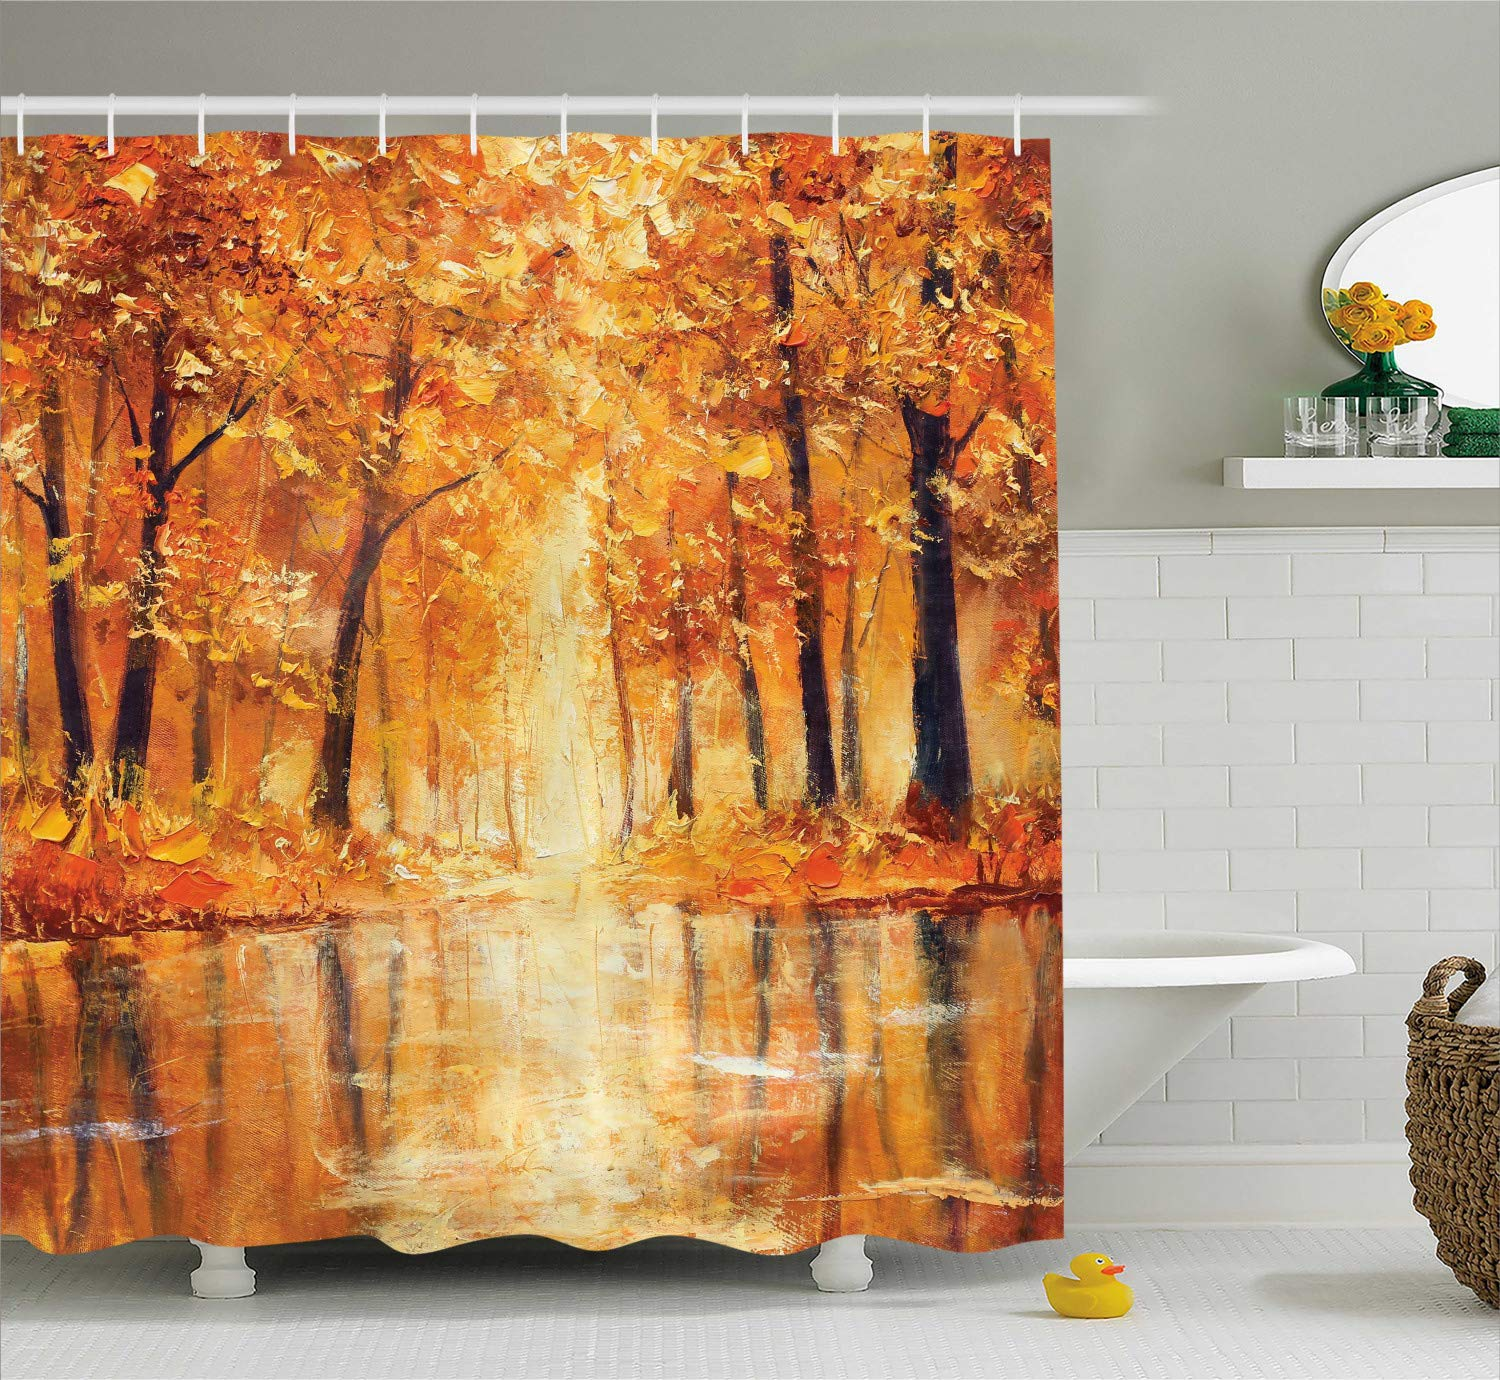 Ambesonne Country Shower Curtain, Painting of a Forest by The Small Lake in Autumn Pale Fall Trees and Leaves Art, Cloth Fabric Bathroom Decor Set ...